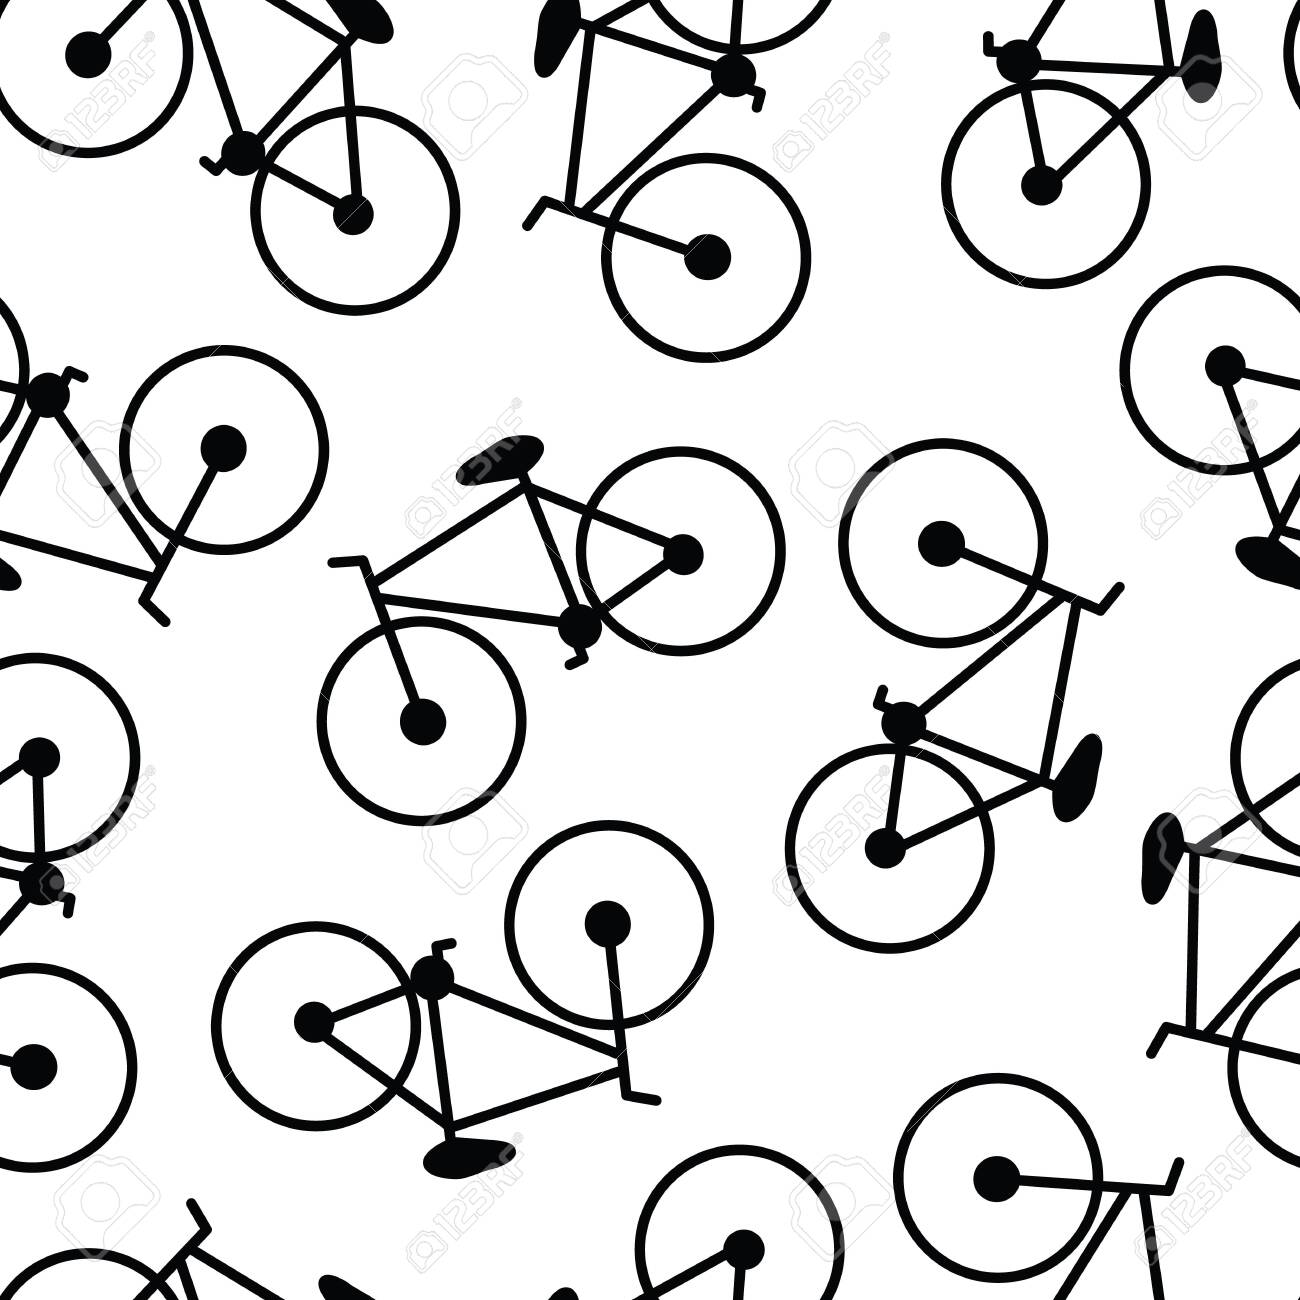 Vector Black Bikes Bicycles on White Background Seamless Repeat Pattern - 130481880